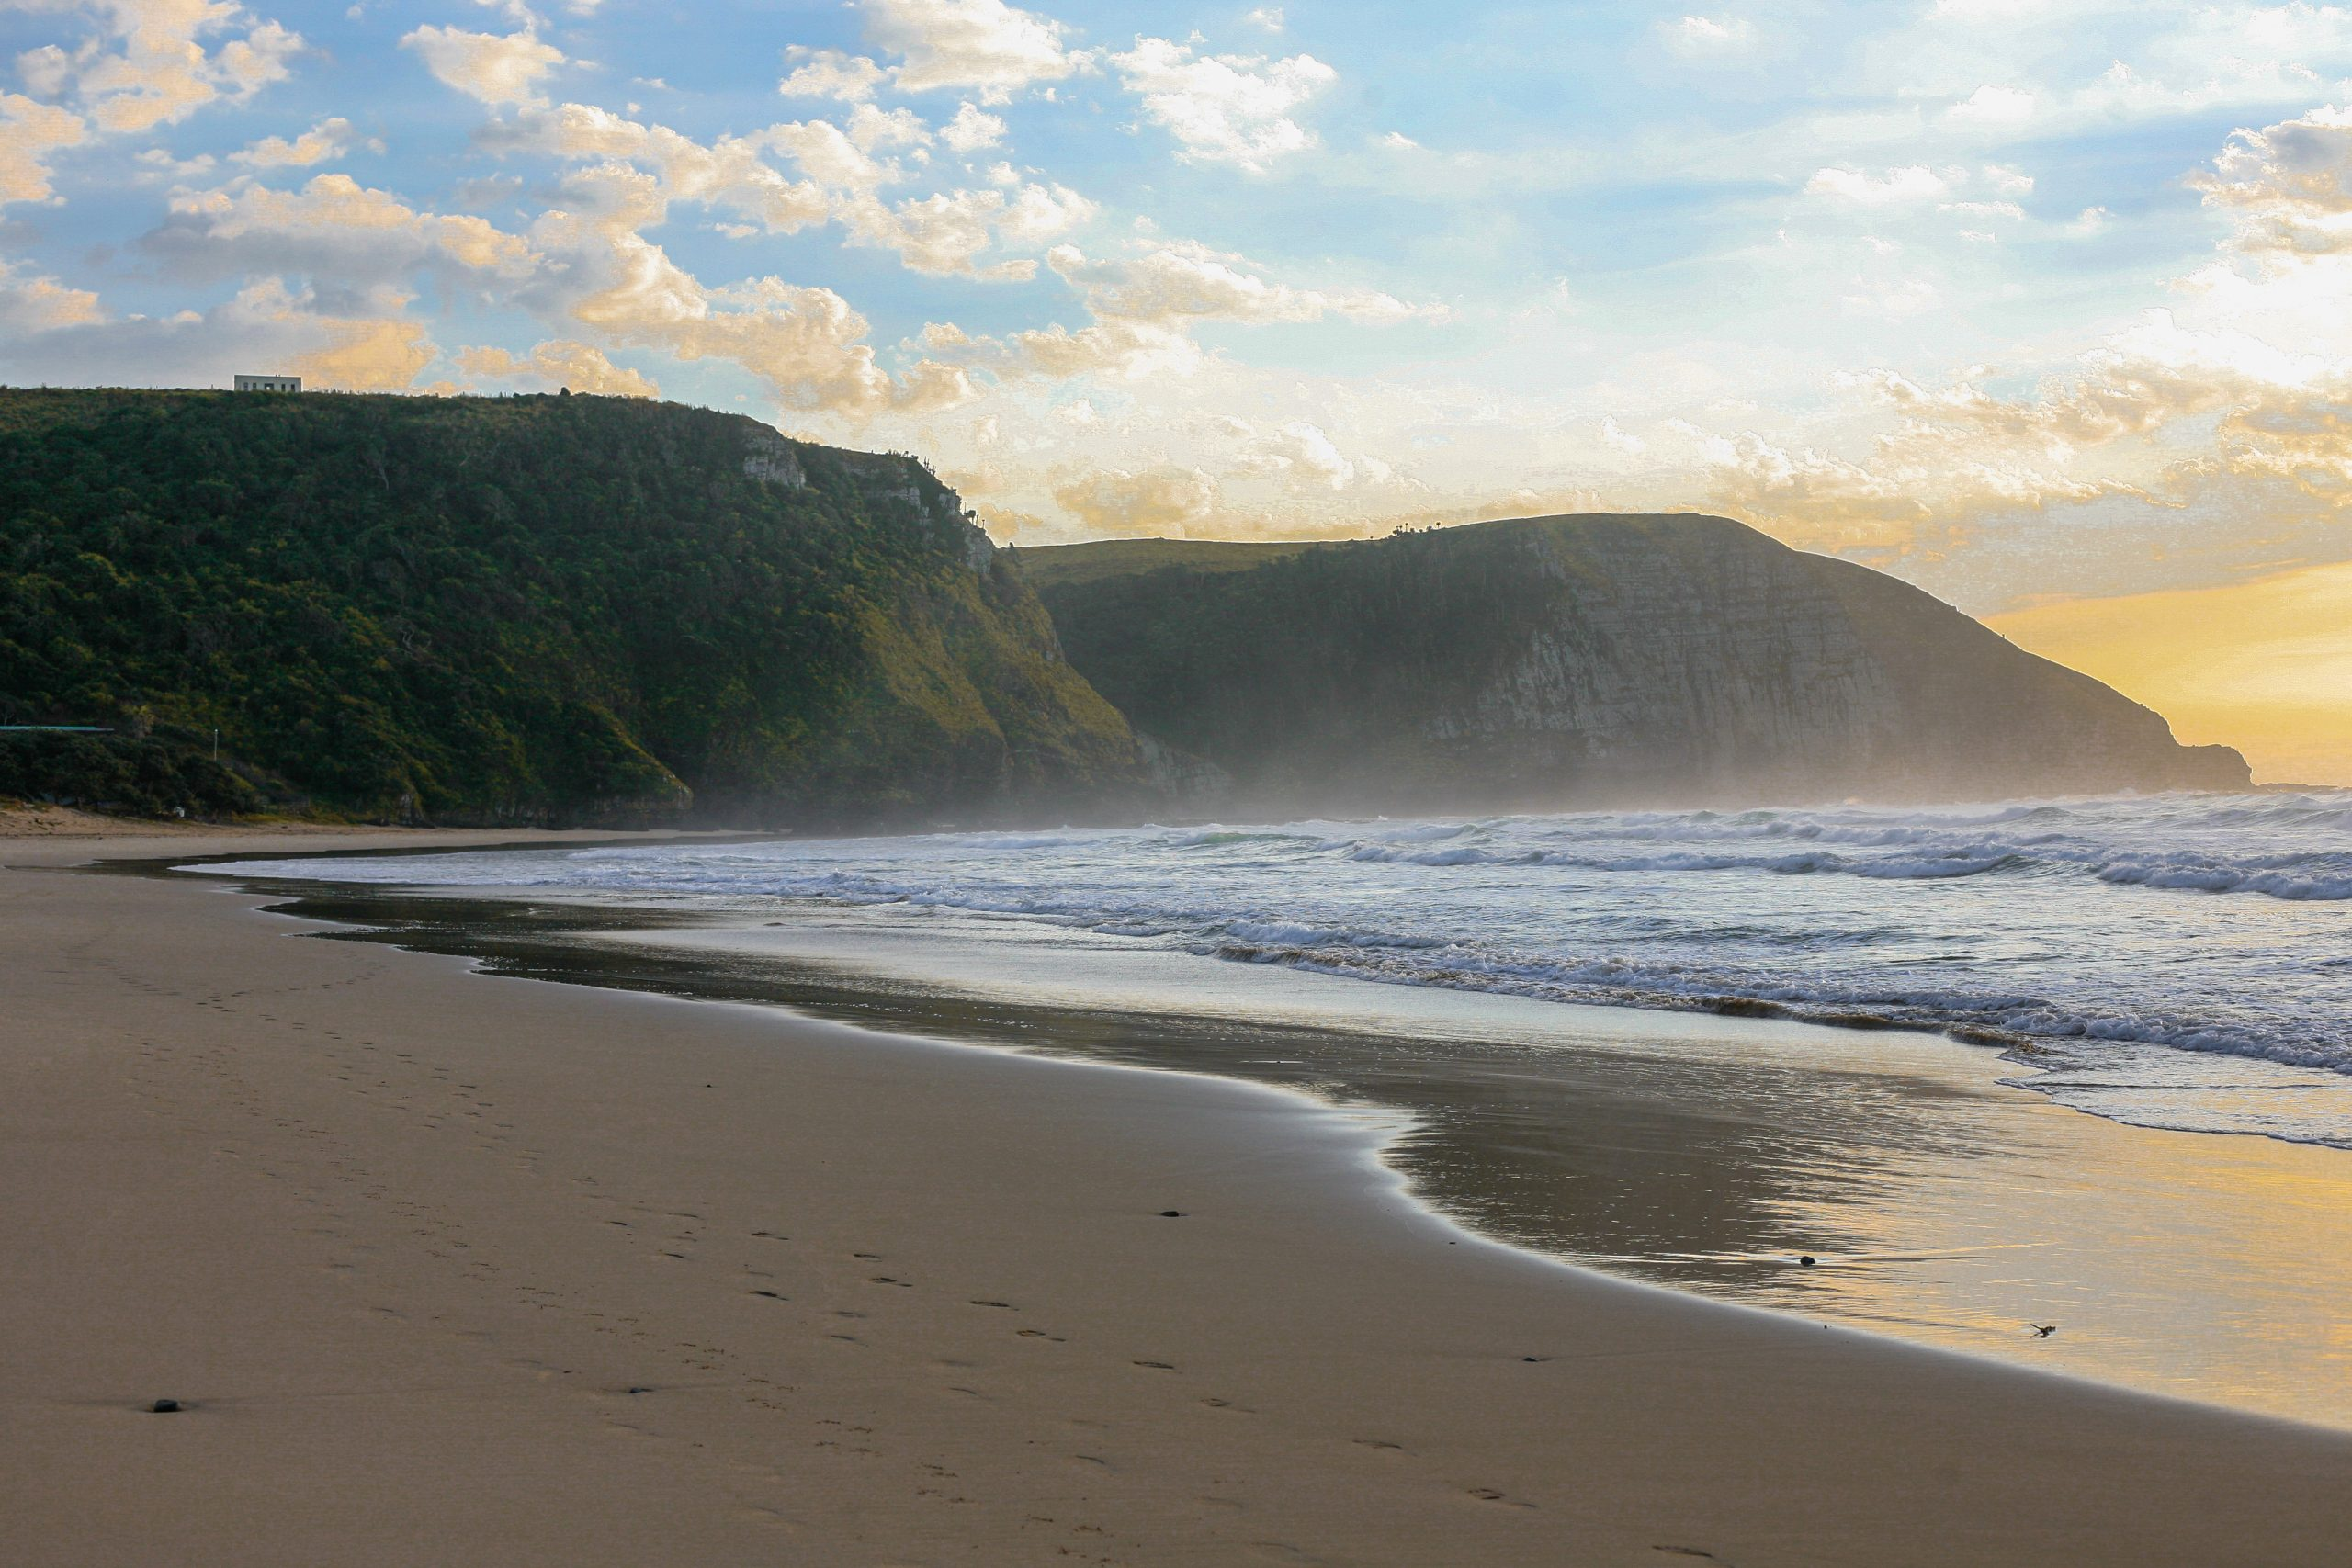 eastern cape beach - visit south africa